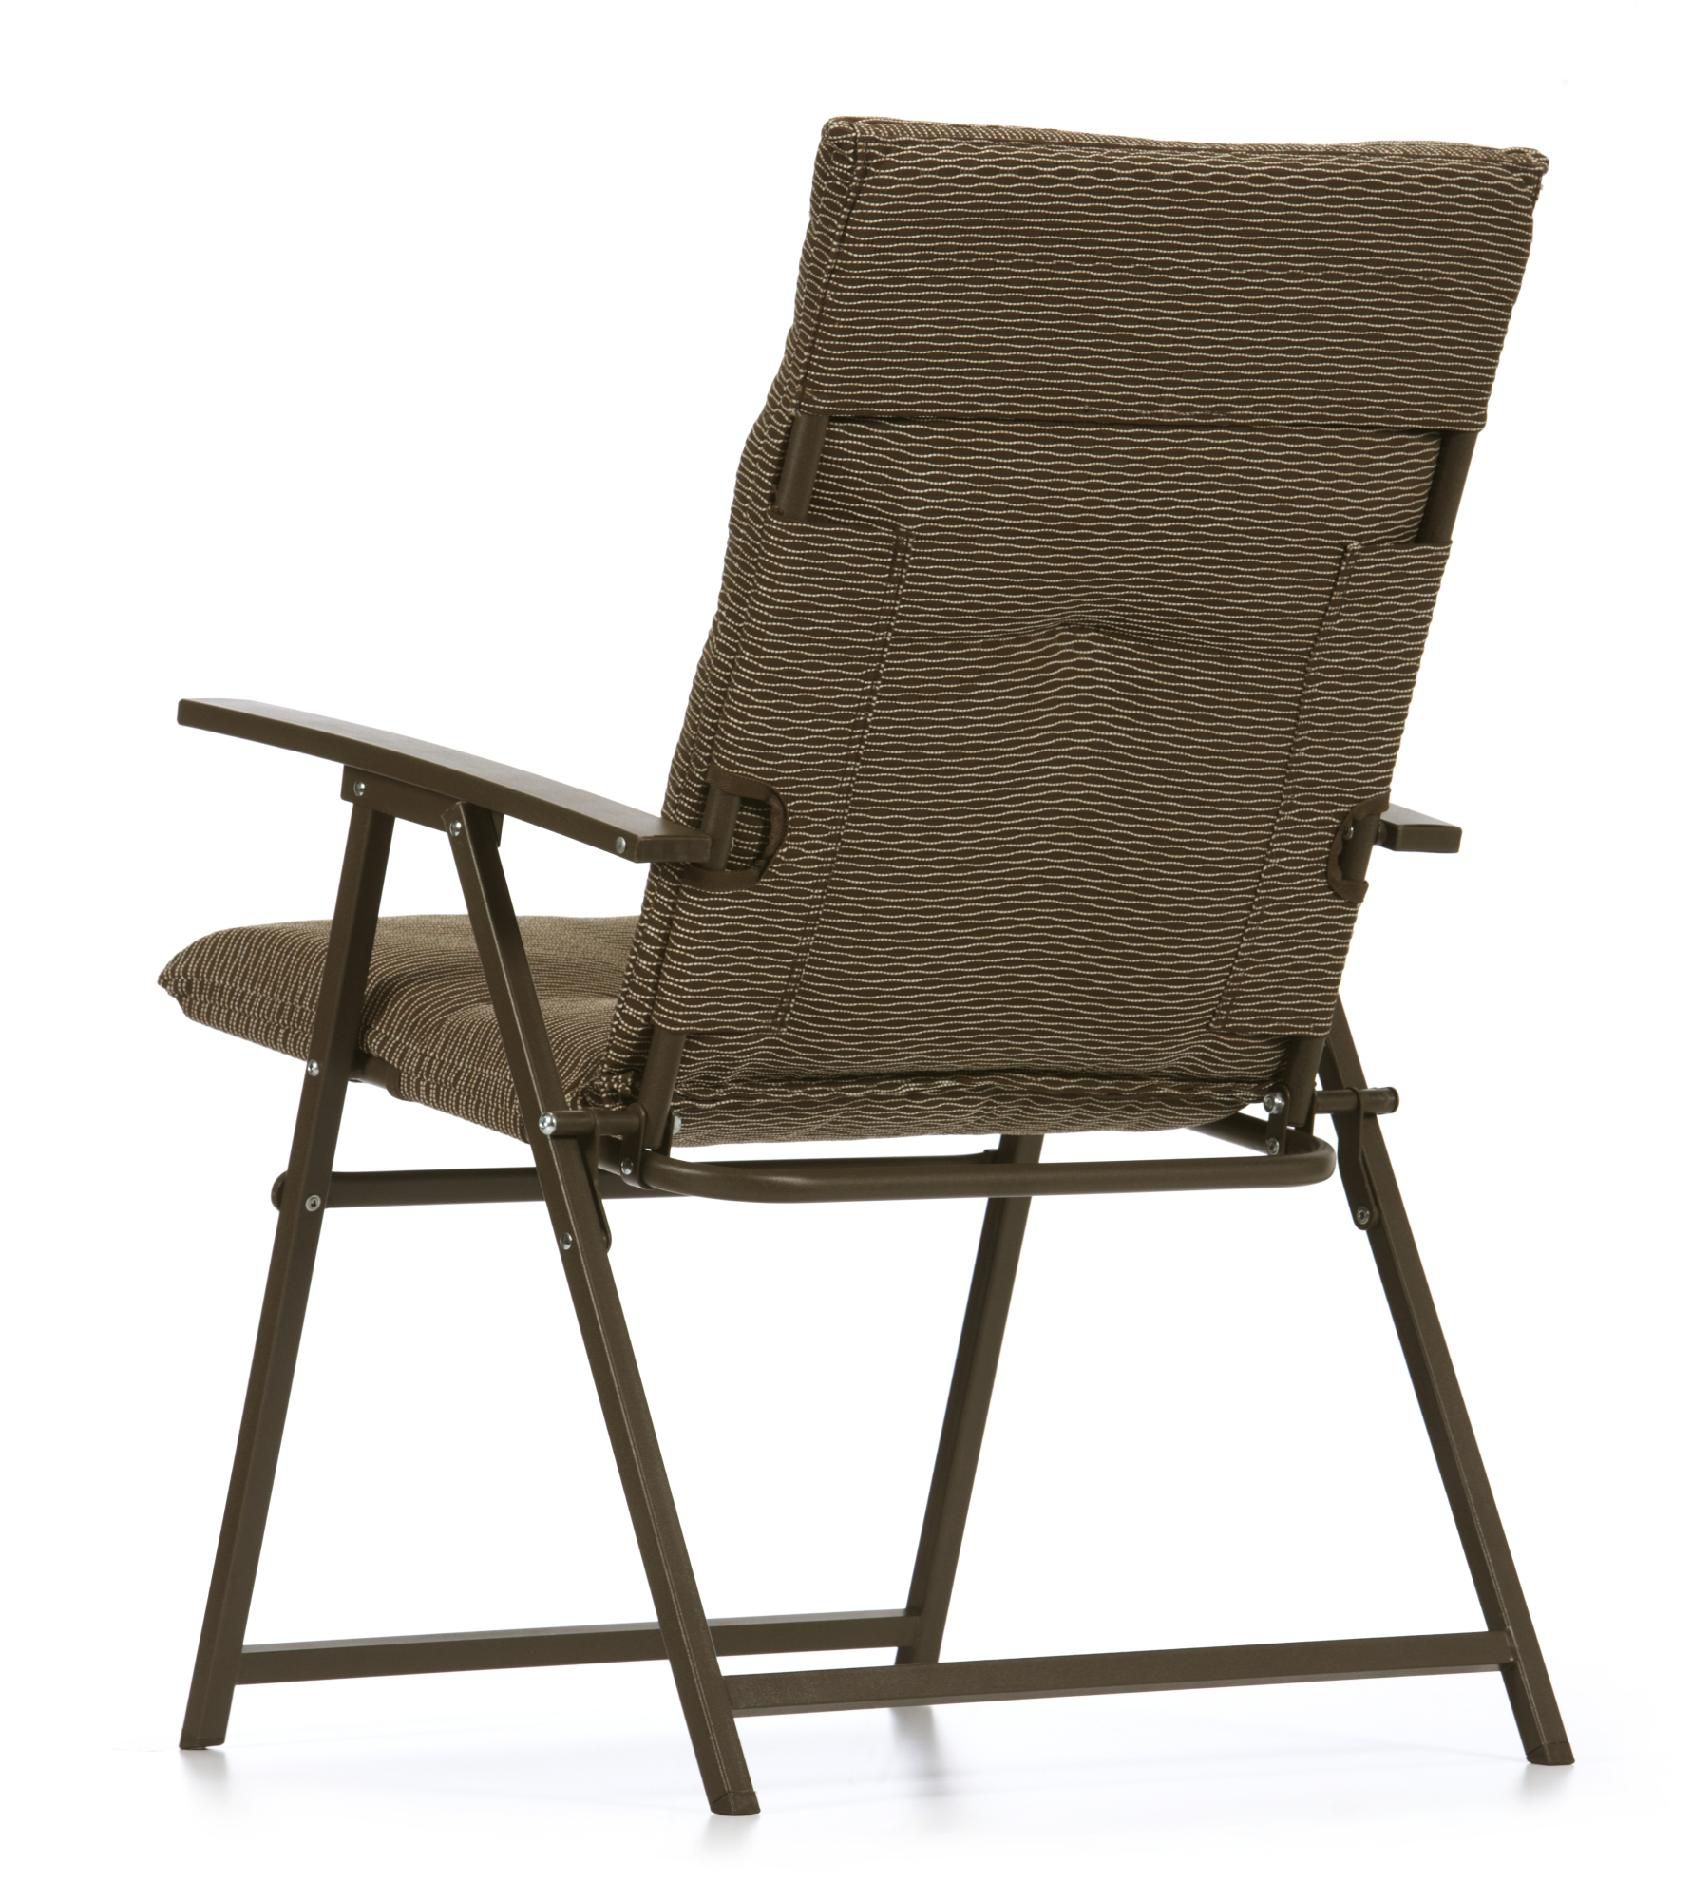 Best La-Z-Boy Outdoor Alex Padded Folding Chair 2 padded folding patio chairs